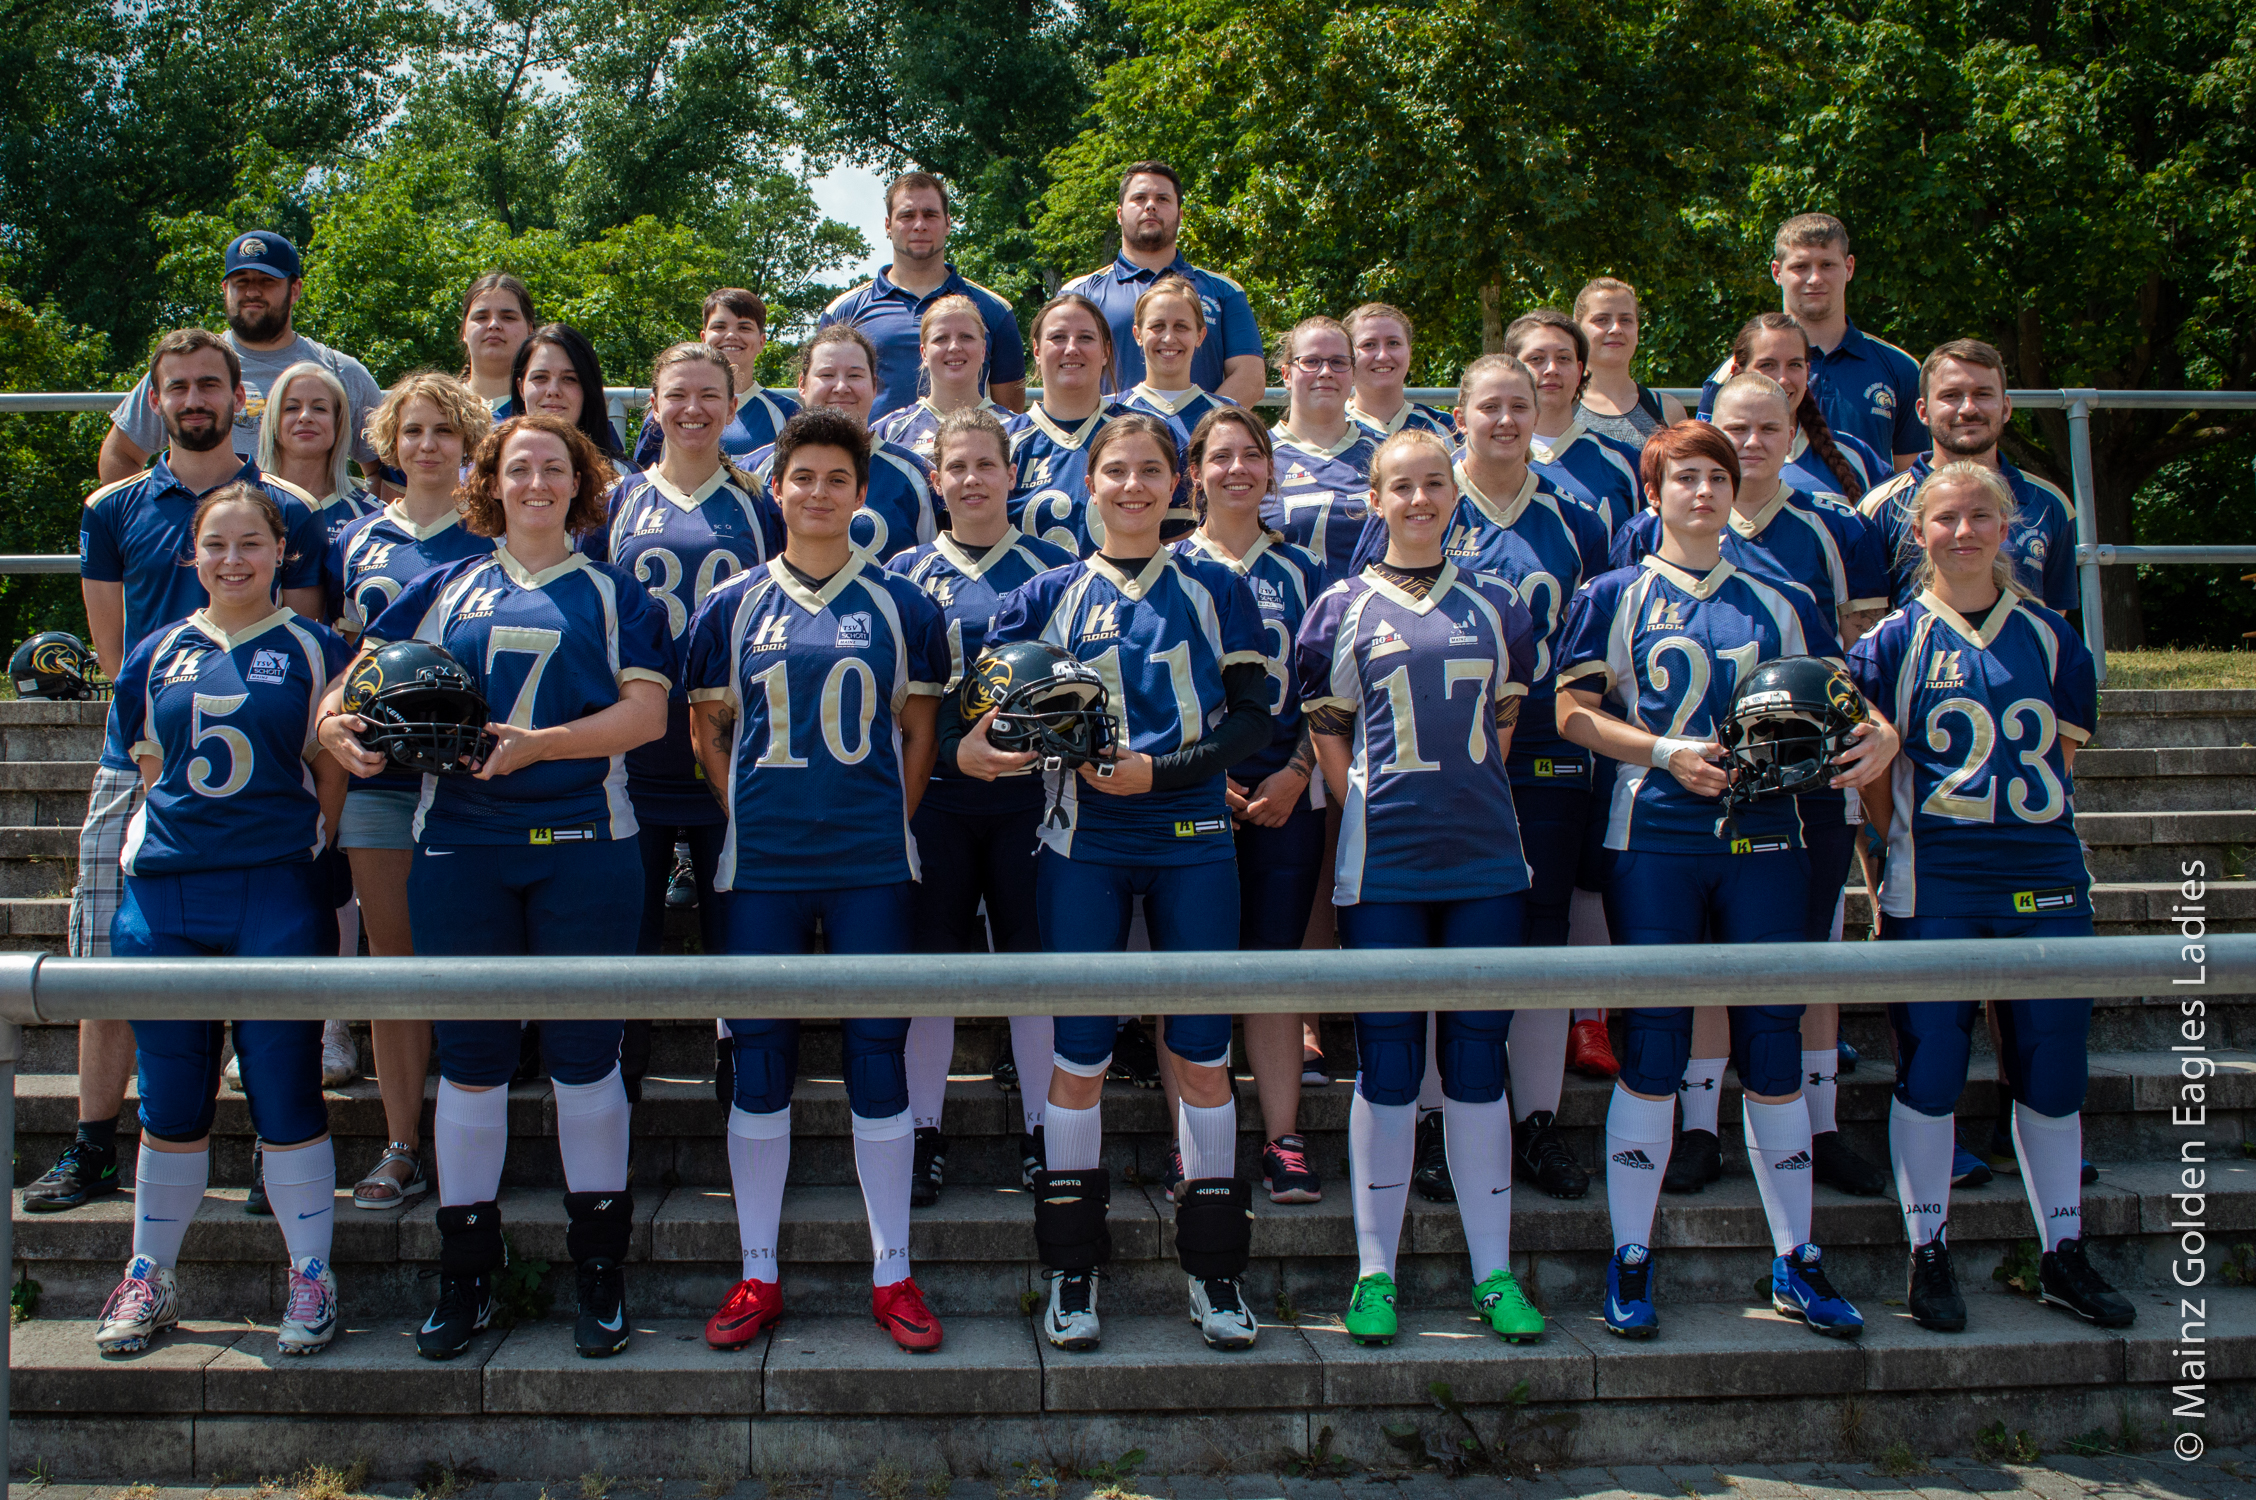 Teamfoto Mainz Golden Eagles Ladies 2018